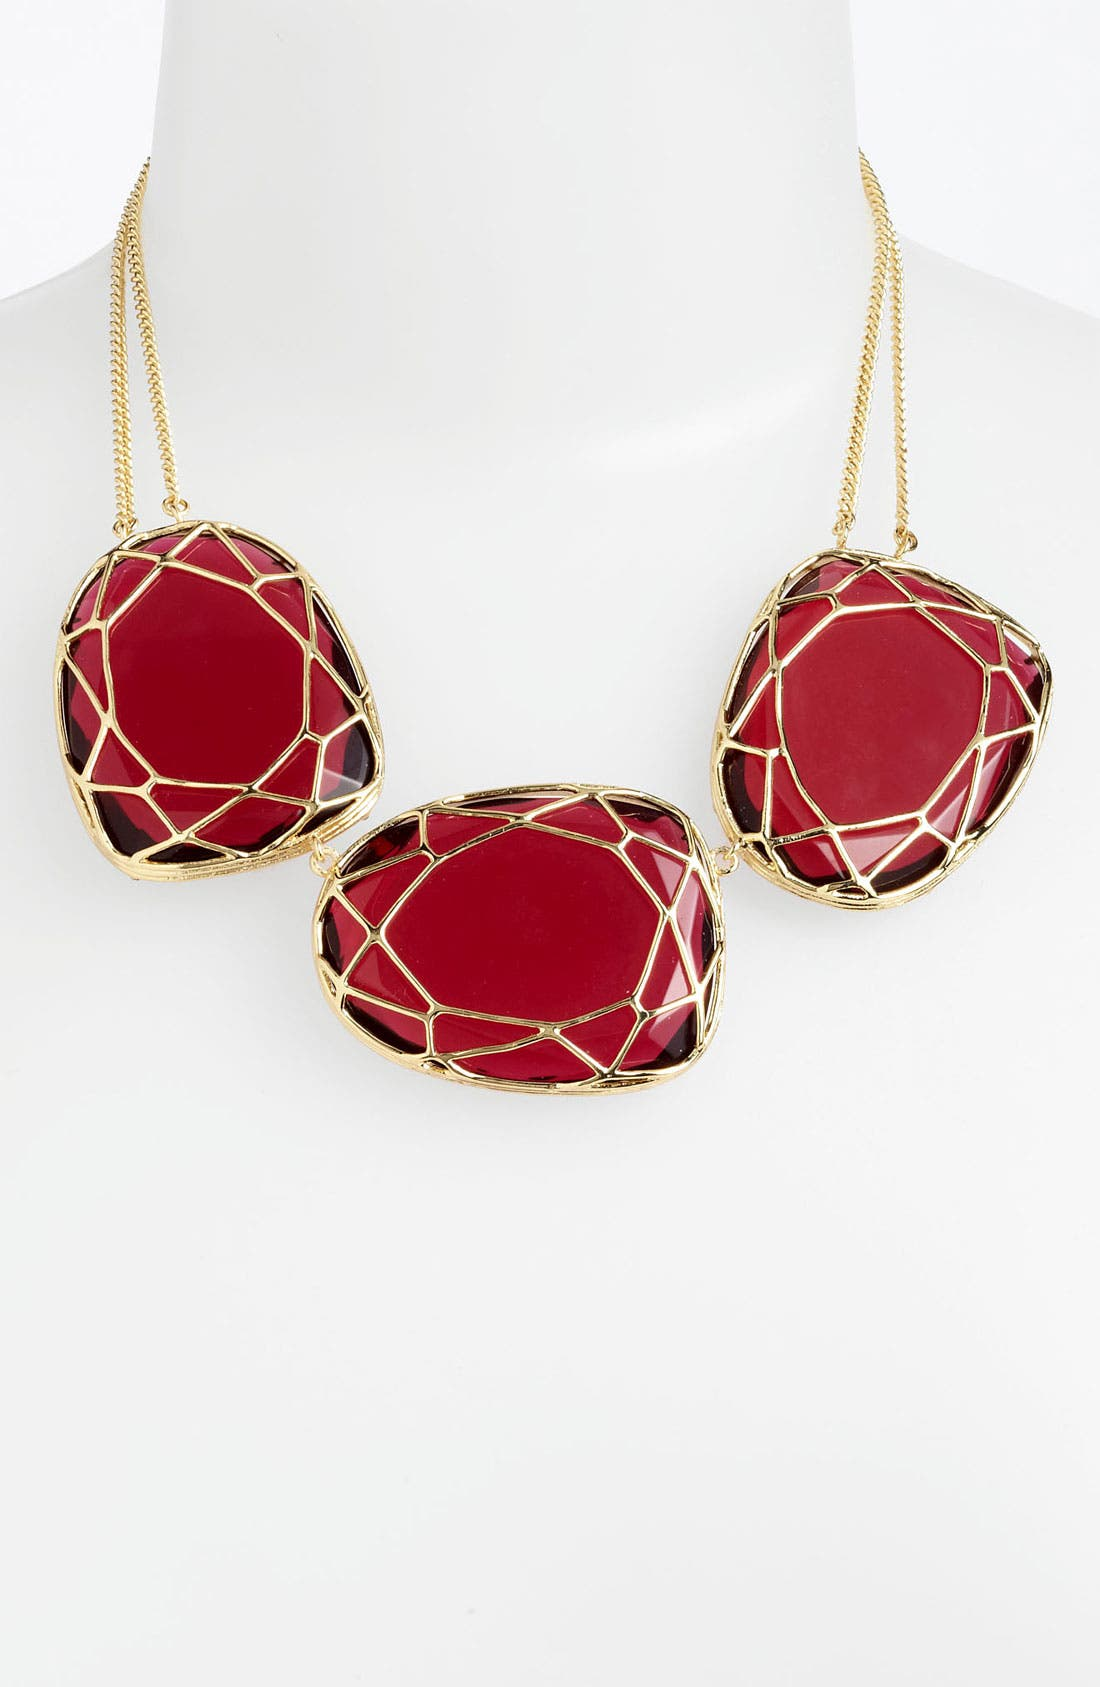 Alternate Image 1 Selected - Kendra Scott 'Marcella' Reversible Statement Necklace